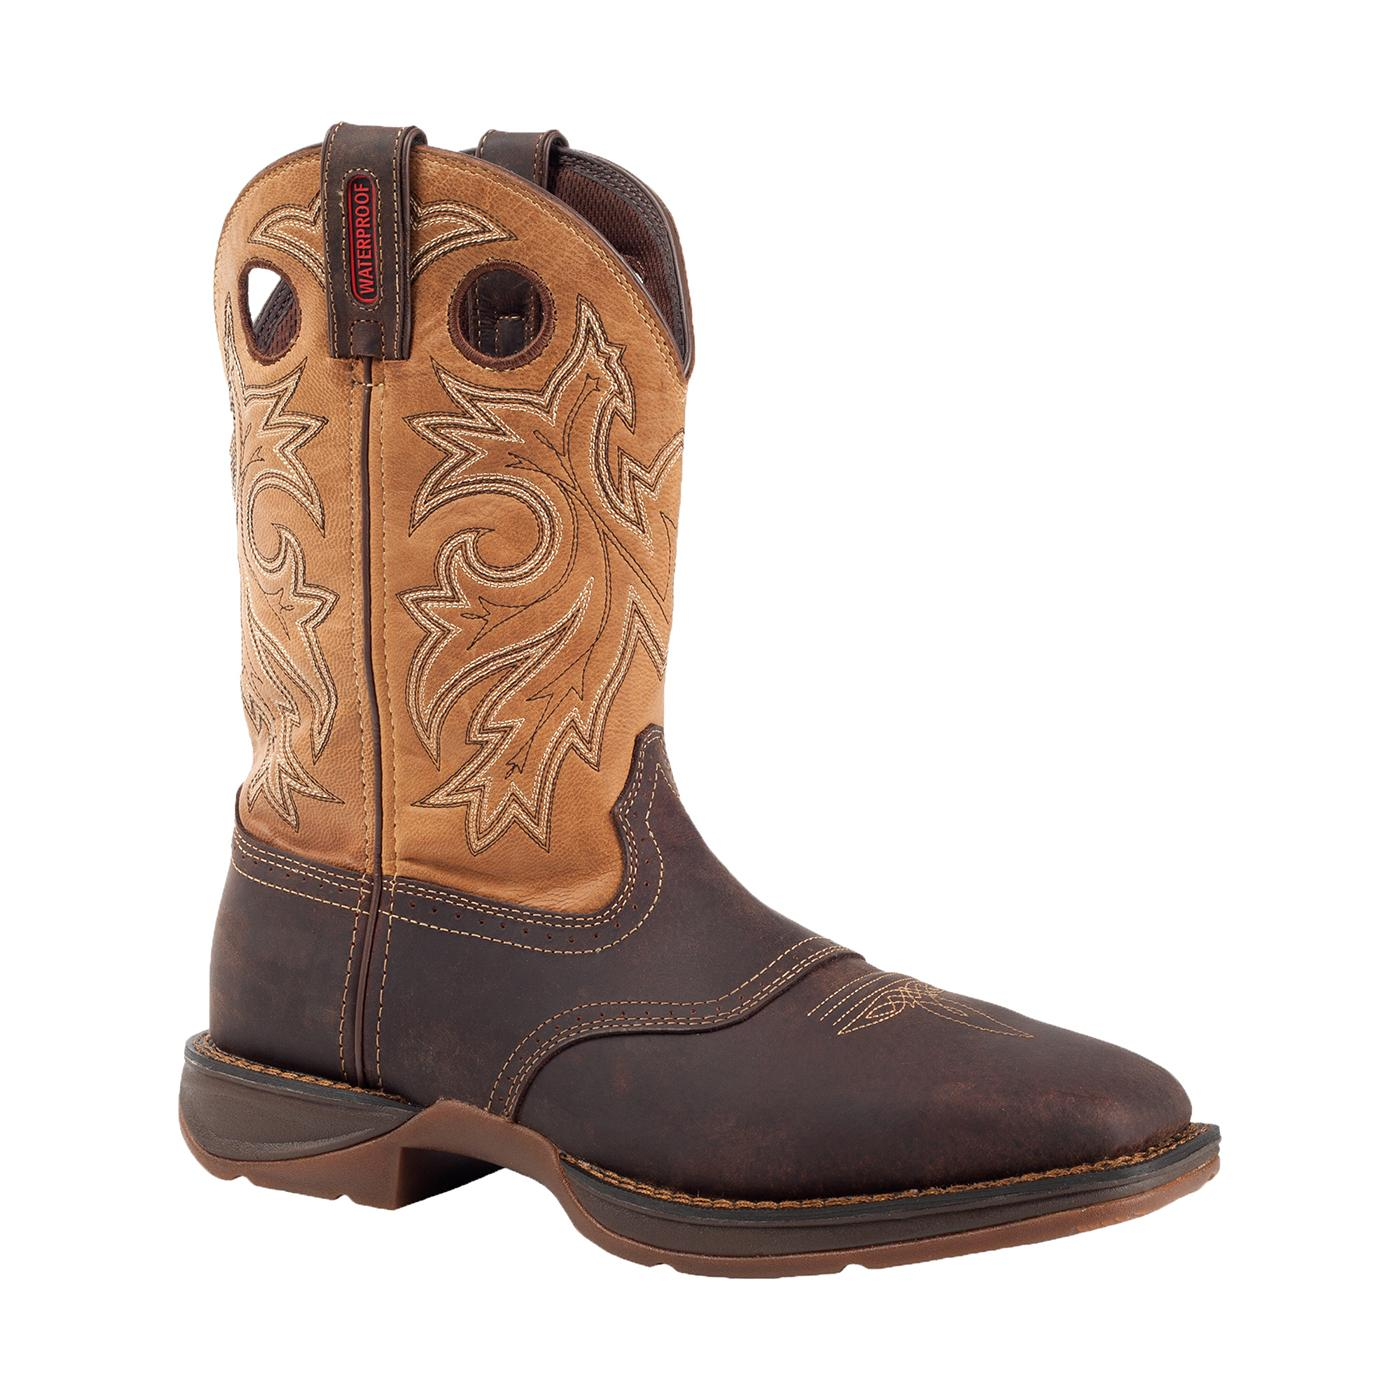 Durango Rebel Men's Waterproof ... Steel-Toe Western Boots perfect for sale buy cheap prices outlet lowest price the best store to get zrZSs